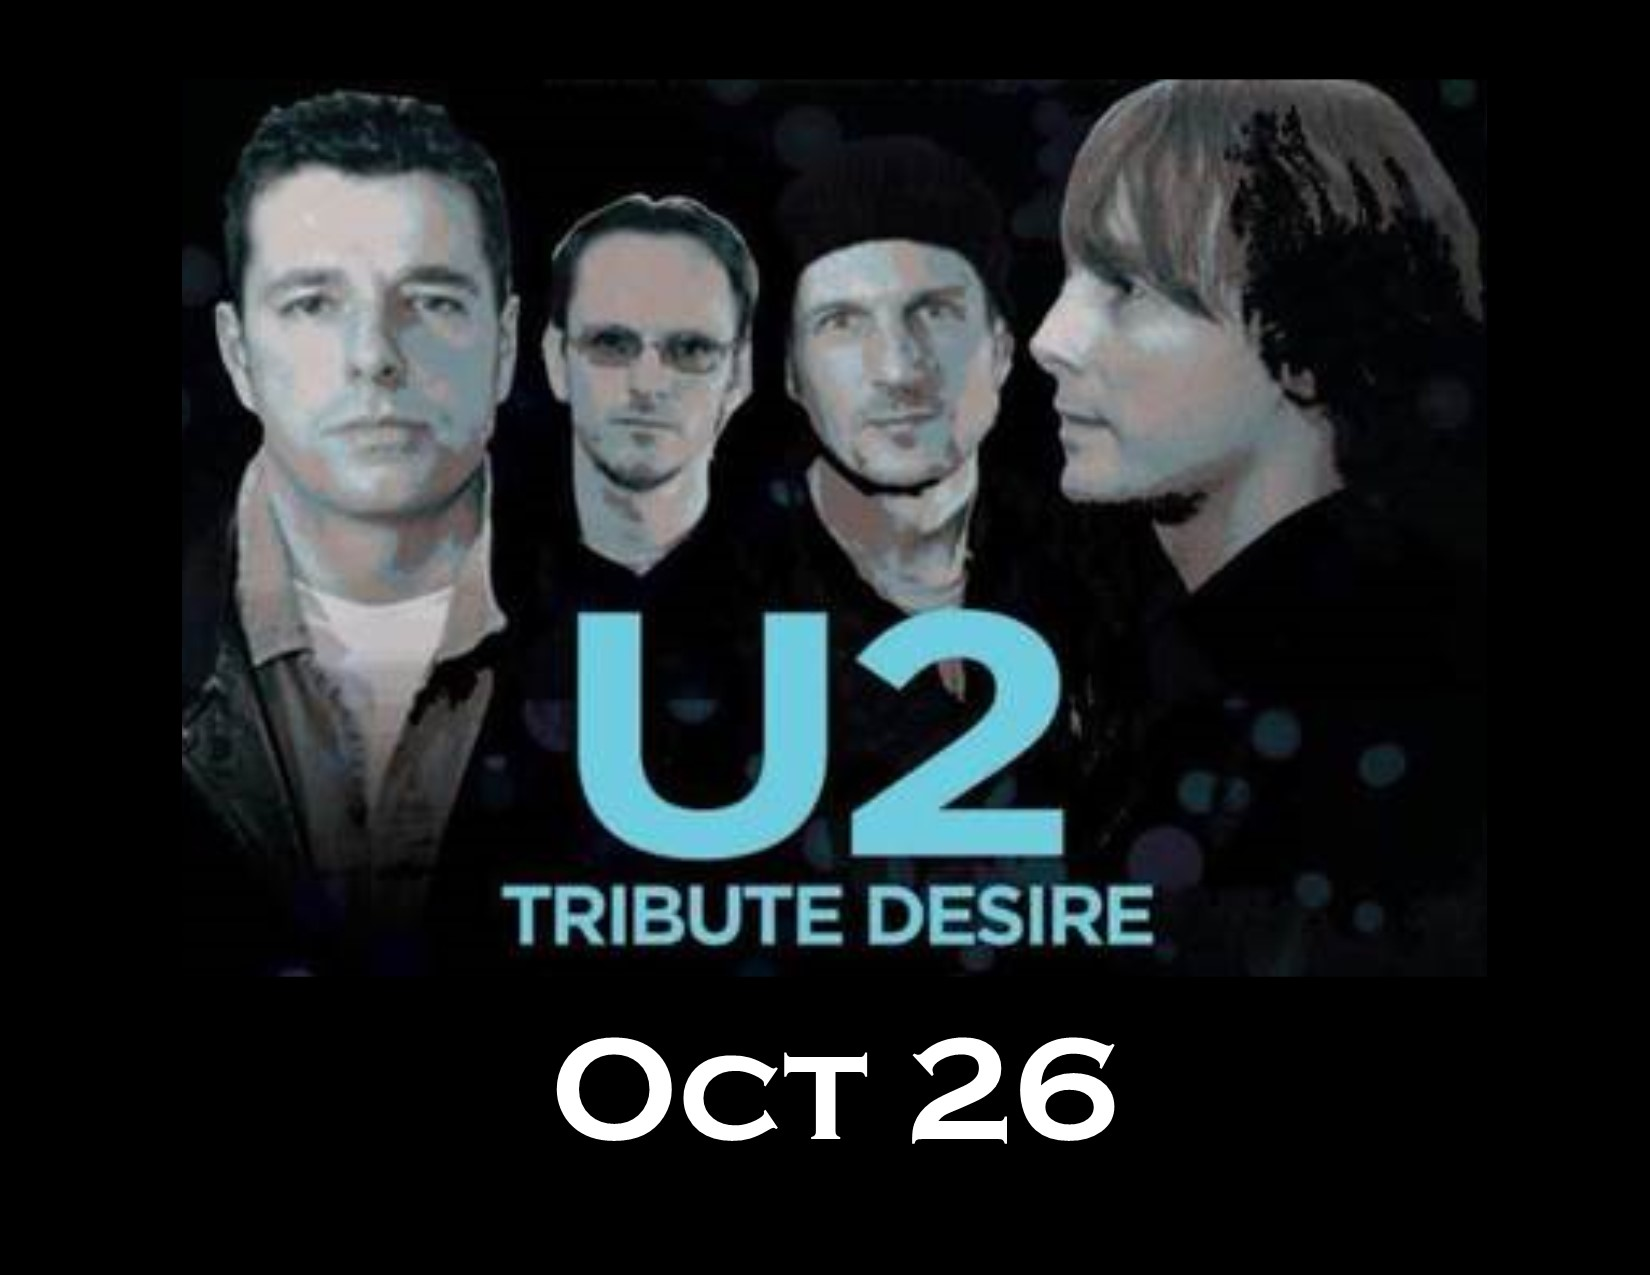 Desire - The International U2 Tribute